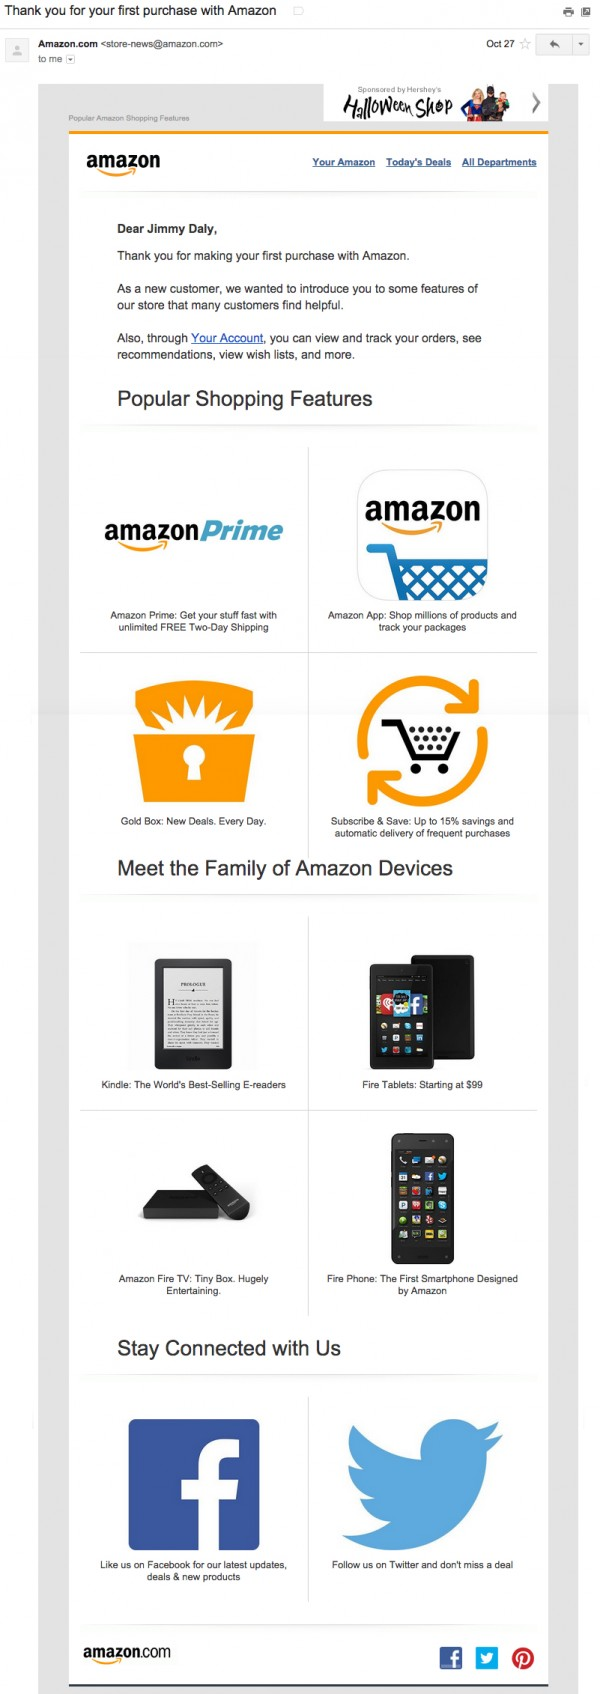 amazon-thank-you-email